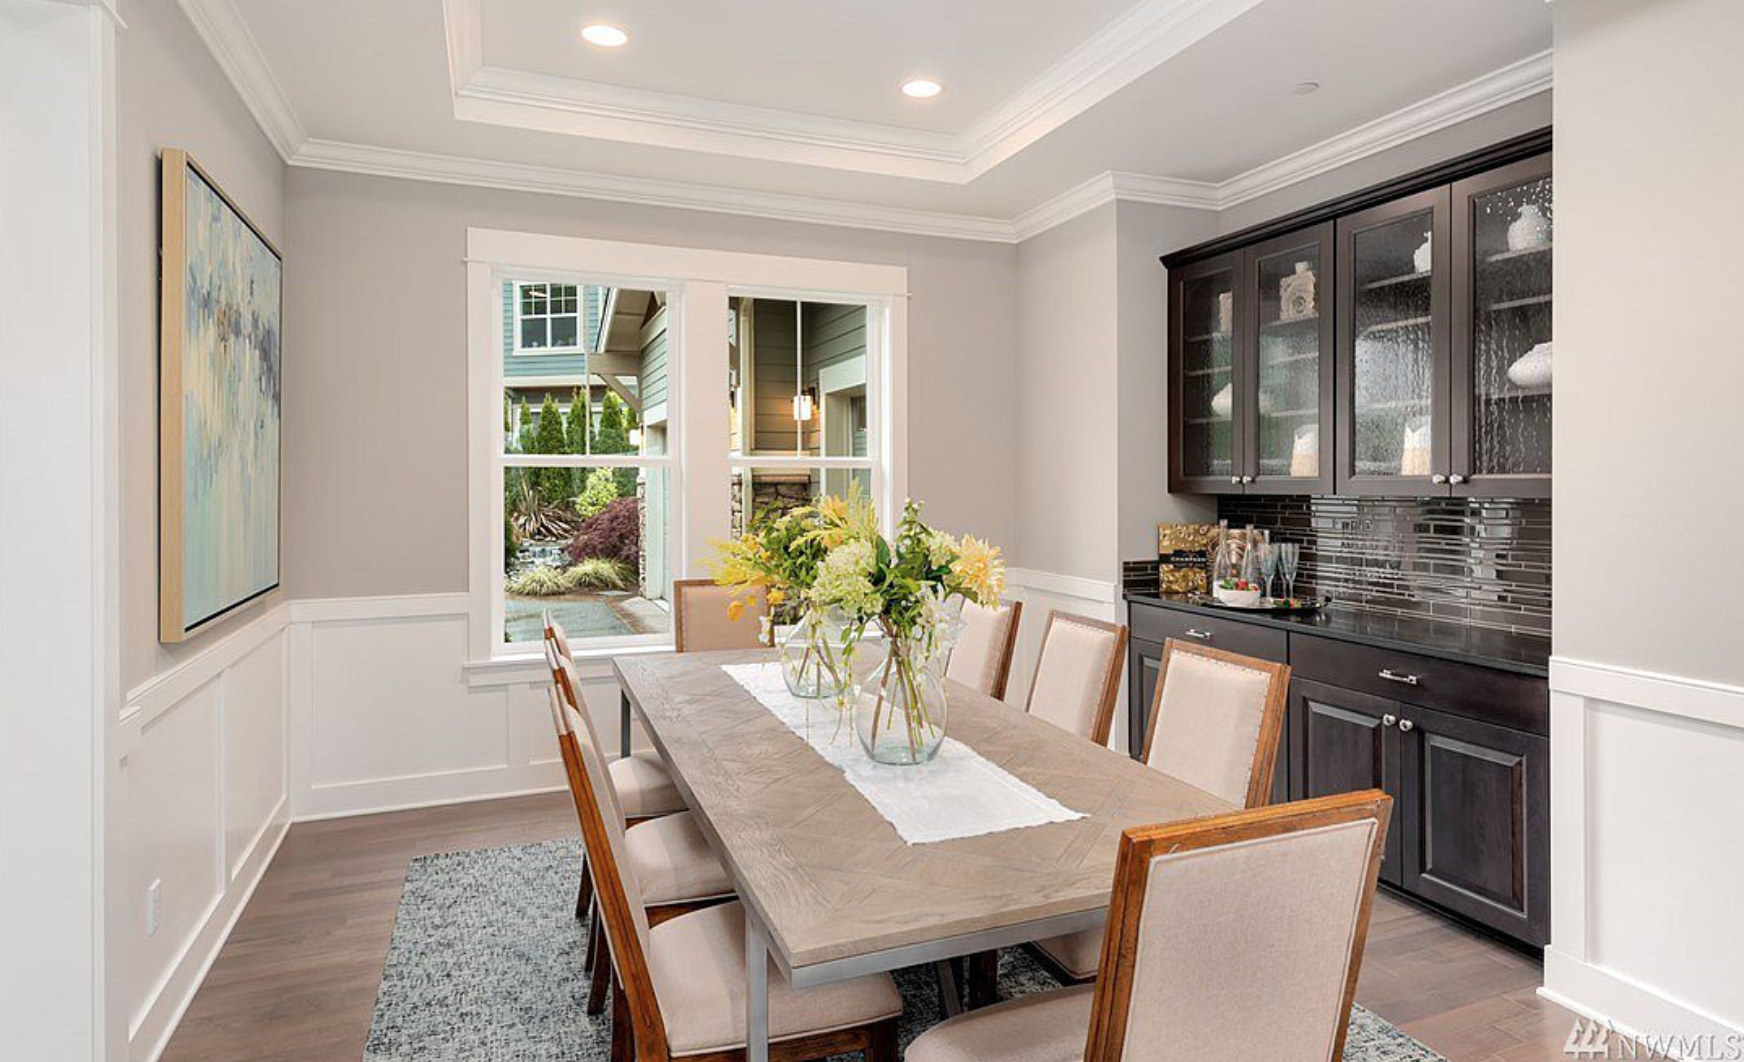 The formal dining area is perfect for dinner parties or events!